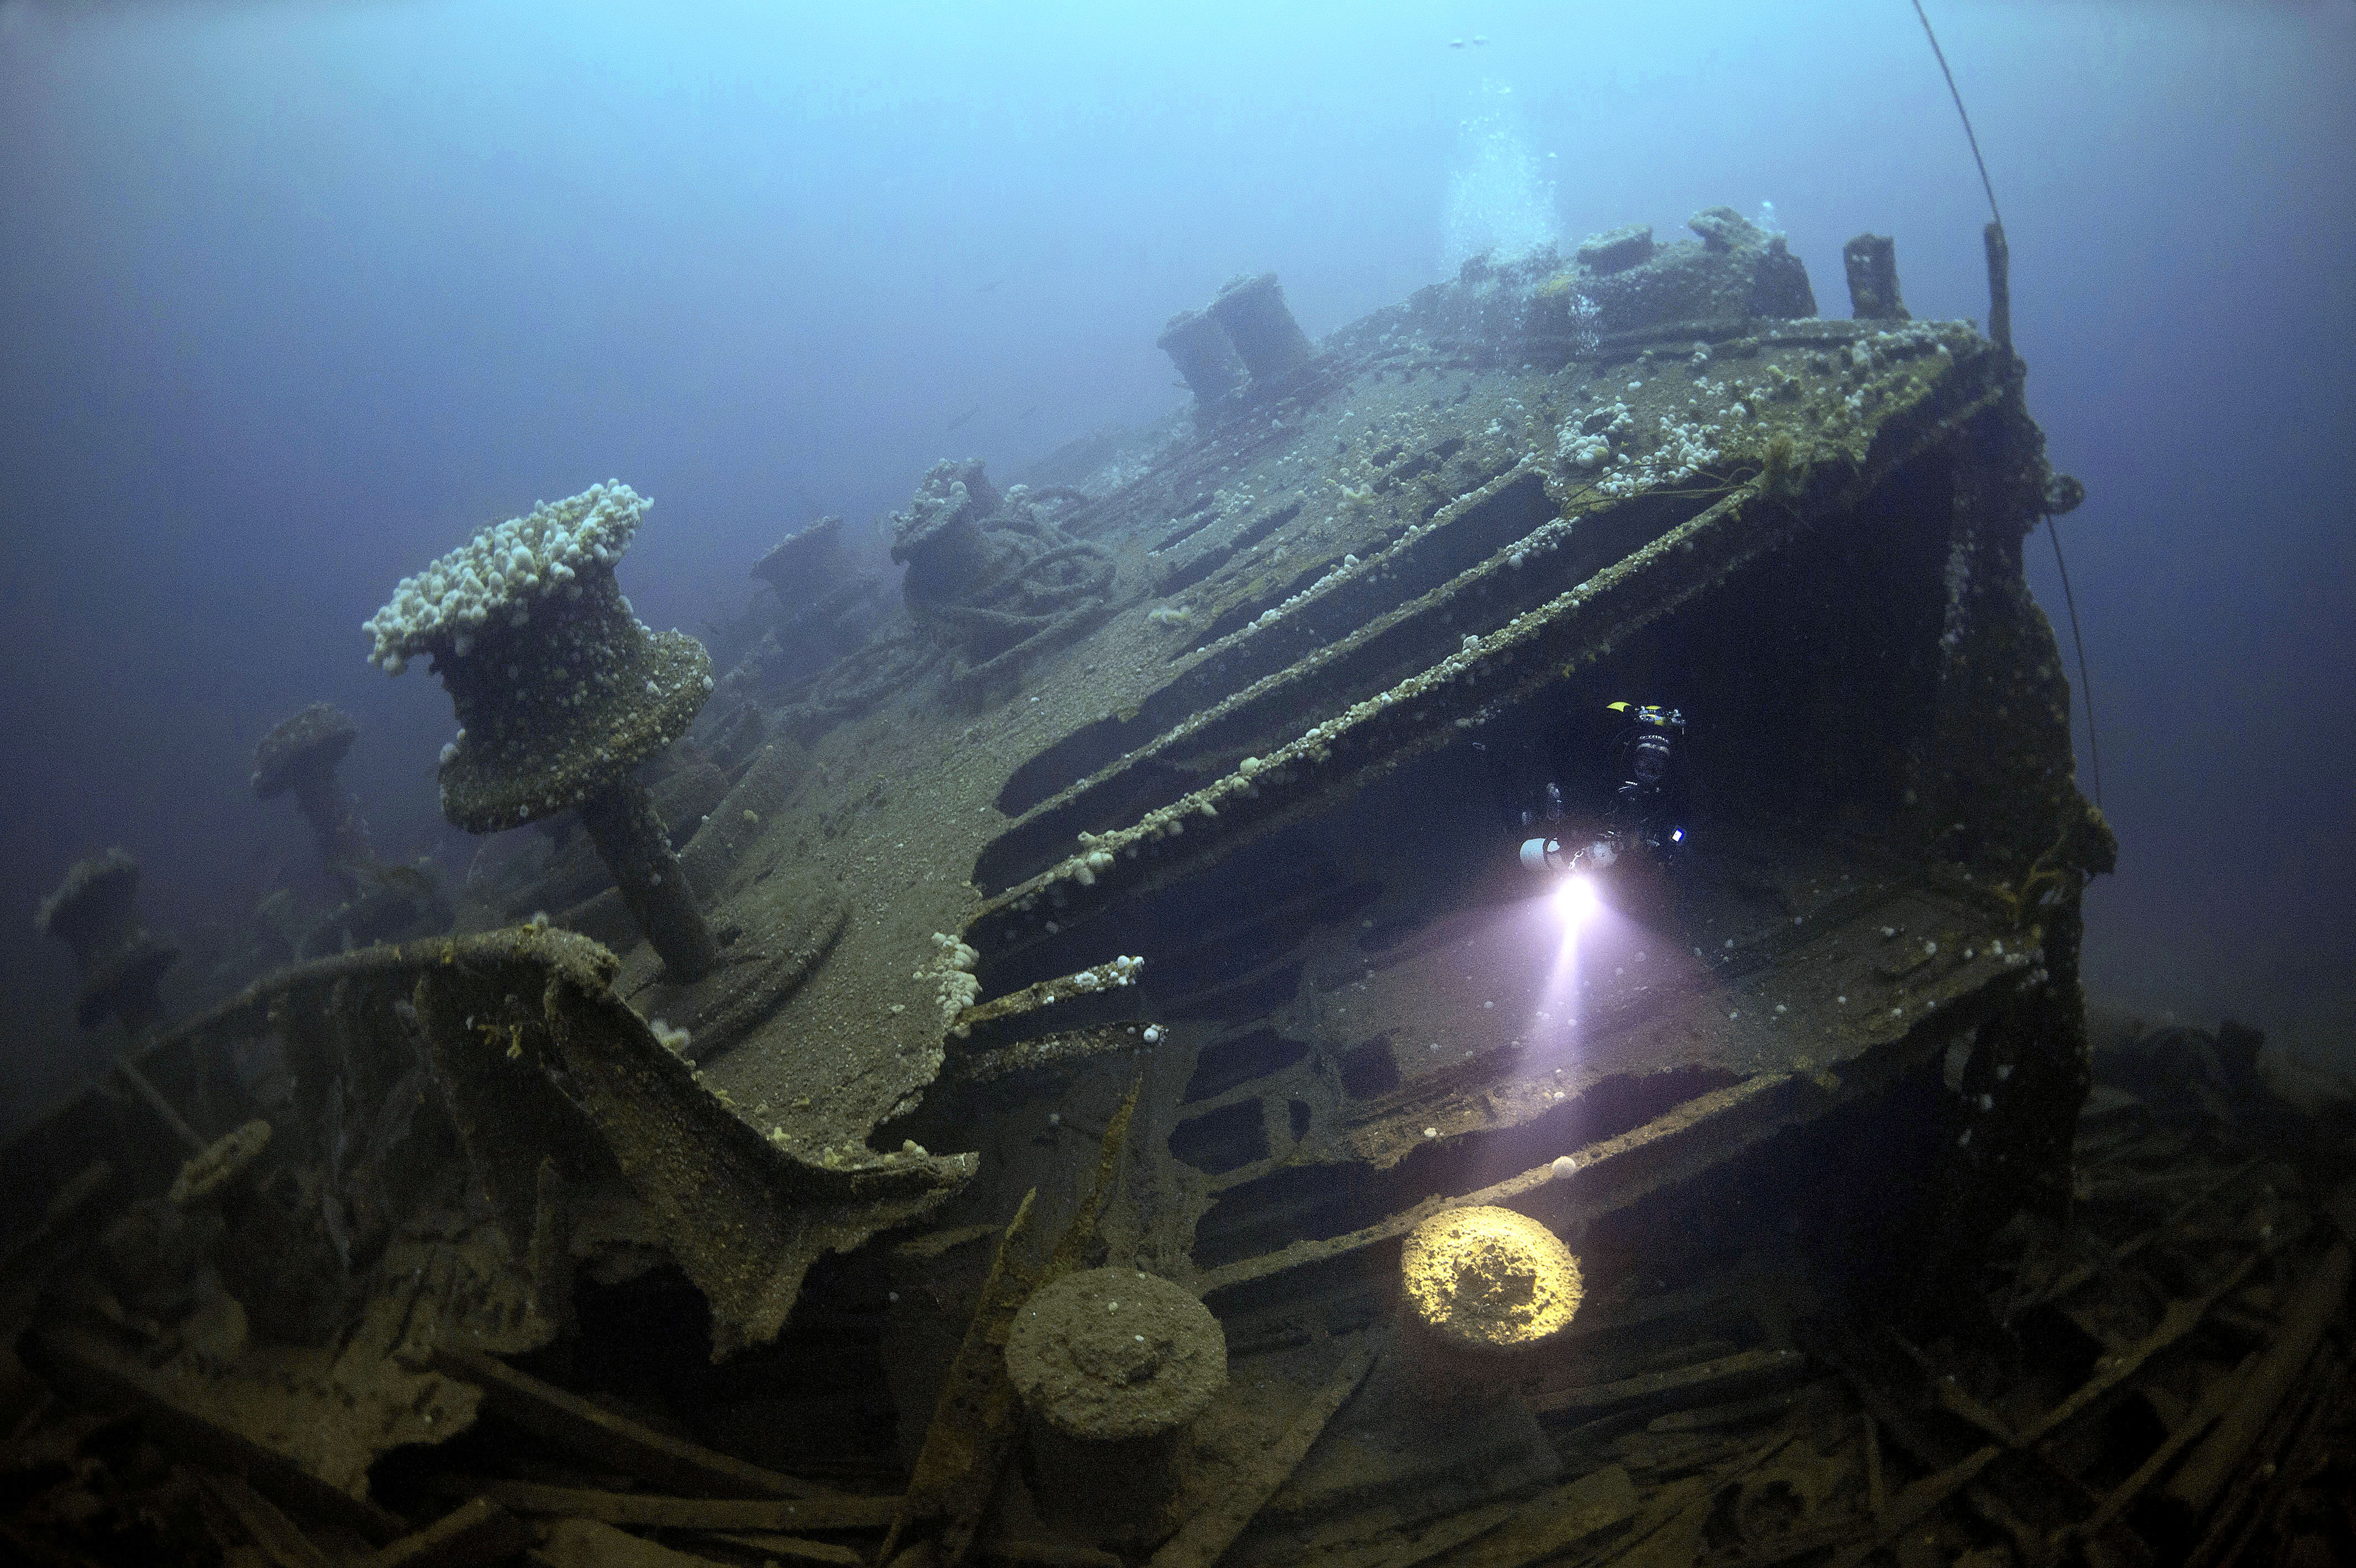 Stunning Pictures Show Lost Underwater Wrecks From The Two